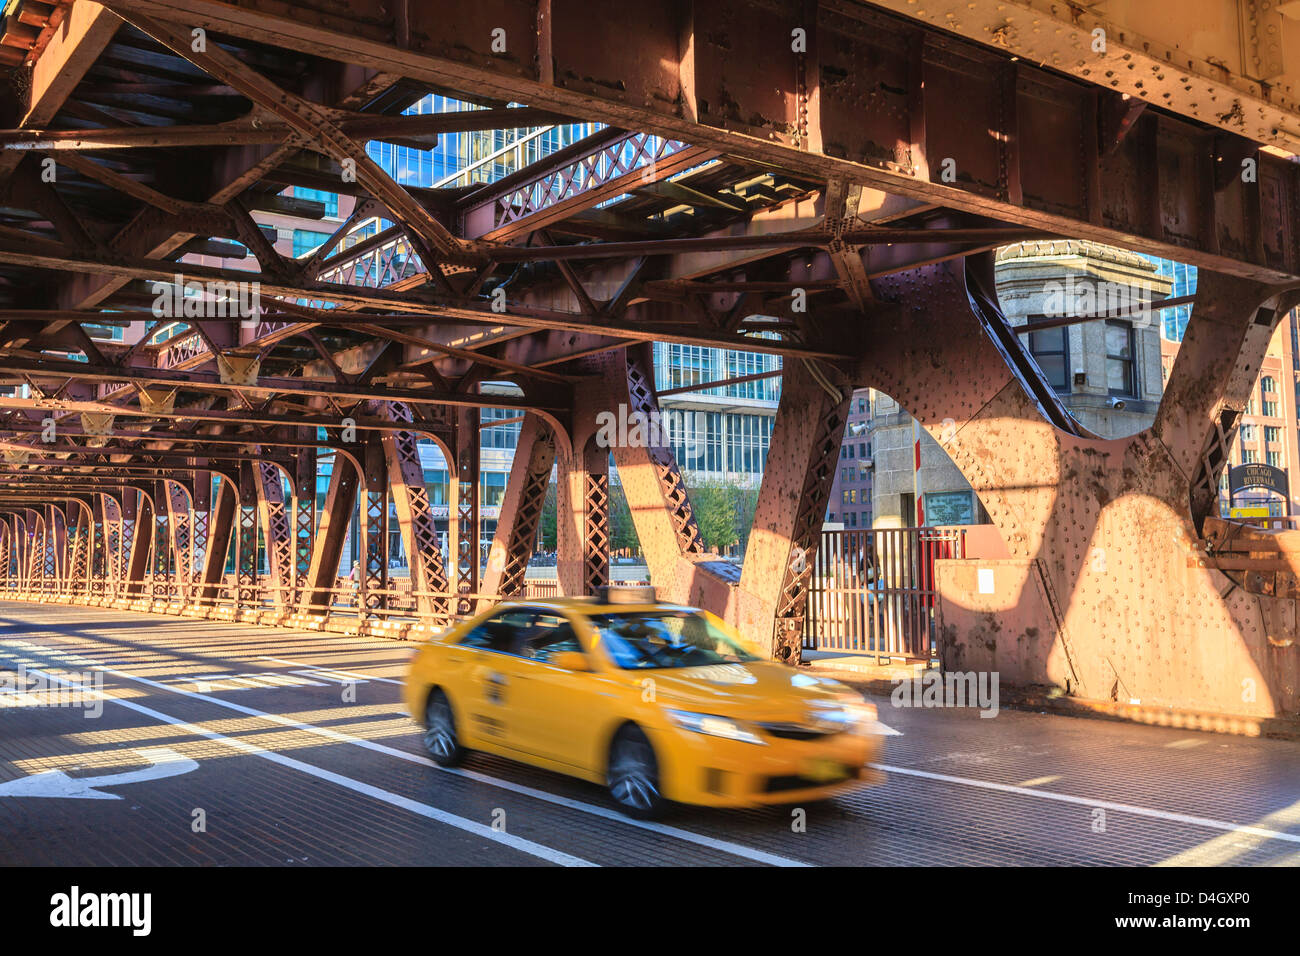 Yellow taxi crossing a bridge over the Chicago River, Chicago, Illinois, USA - Stock Image